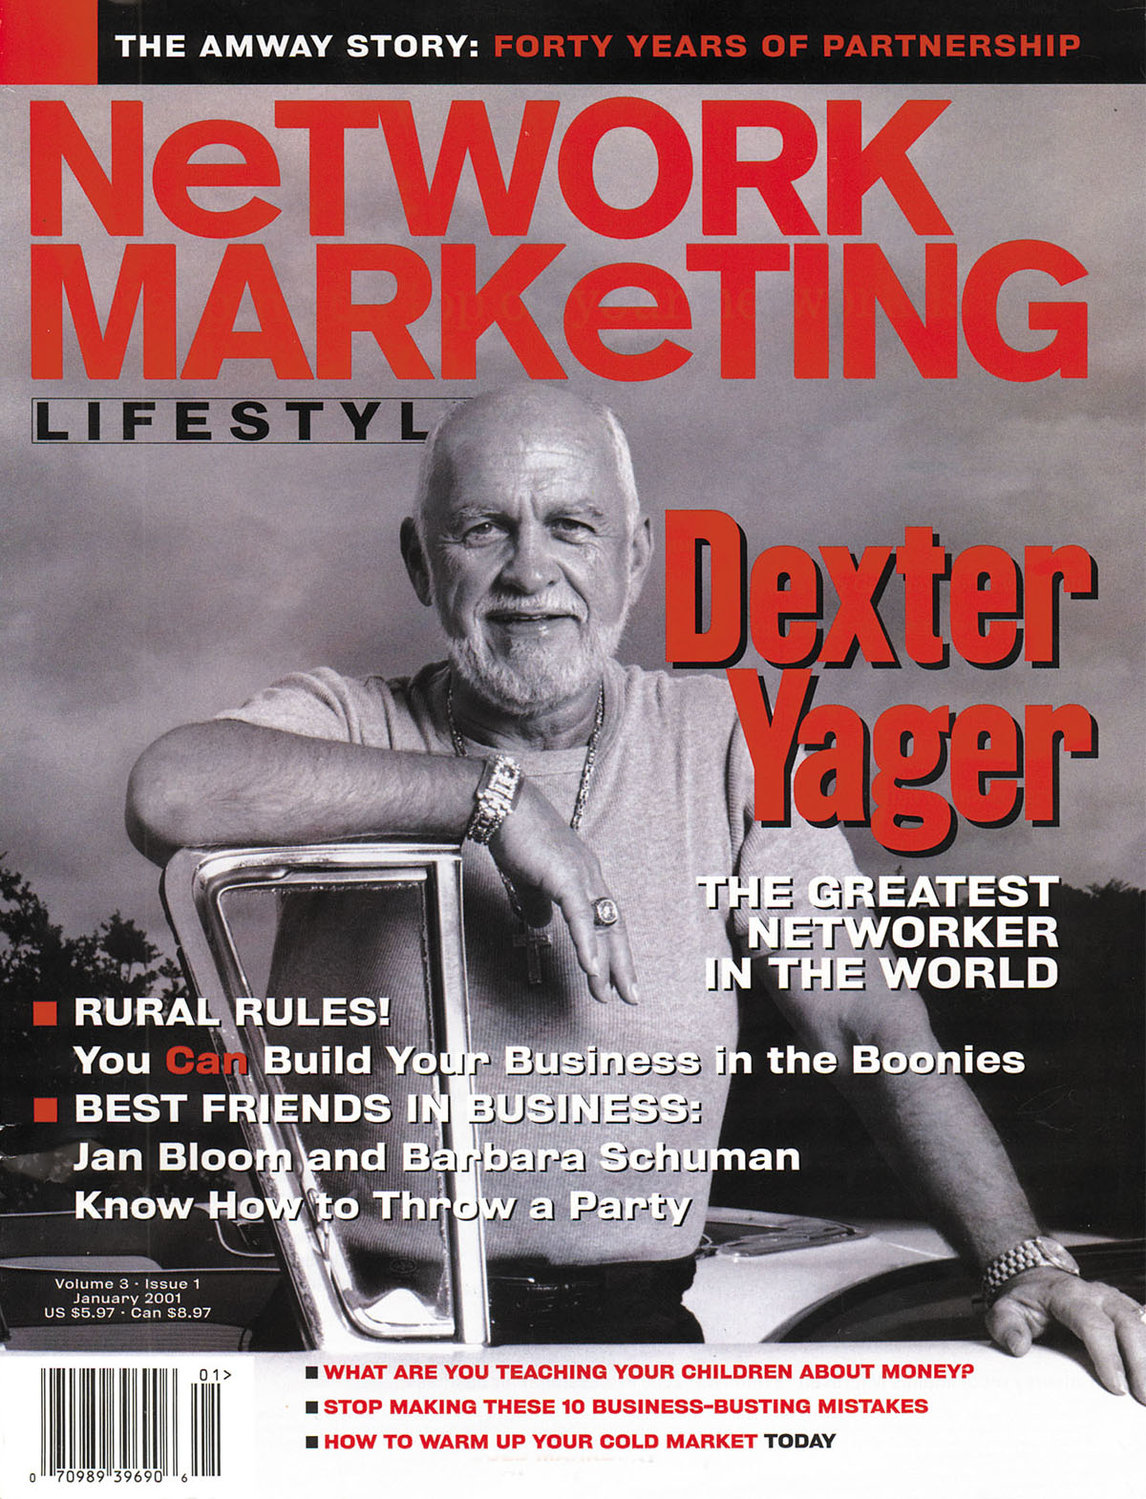 MAGAZINE MAN — The January 2001 issue of Network Marketing Lifestyle featured Dexter Yager on the cover, with one of his classic cars.